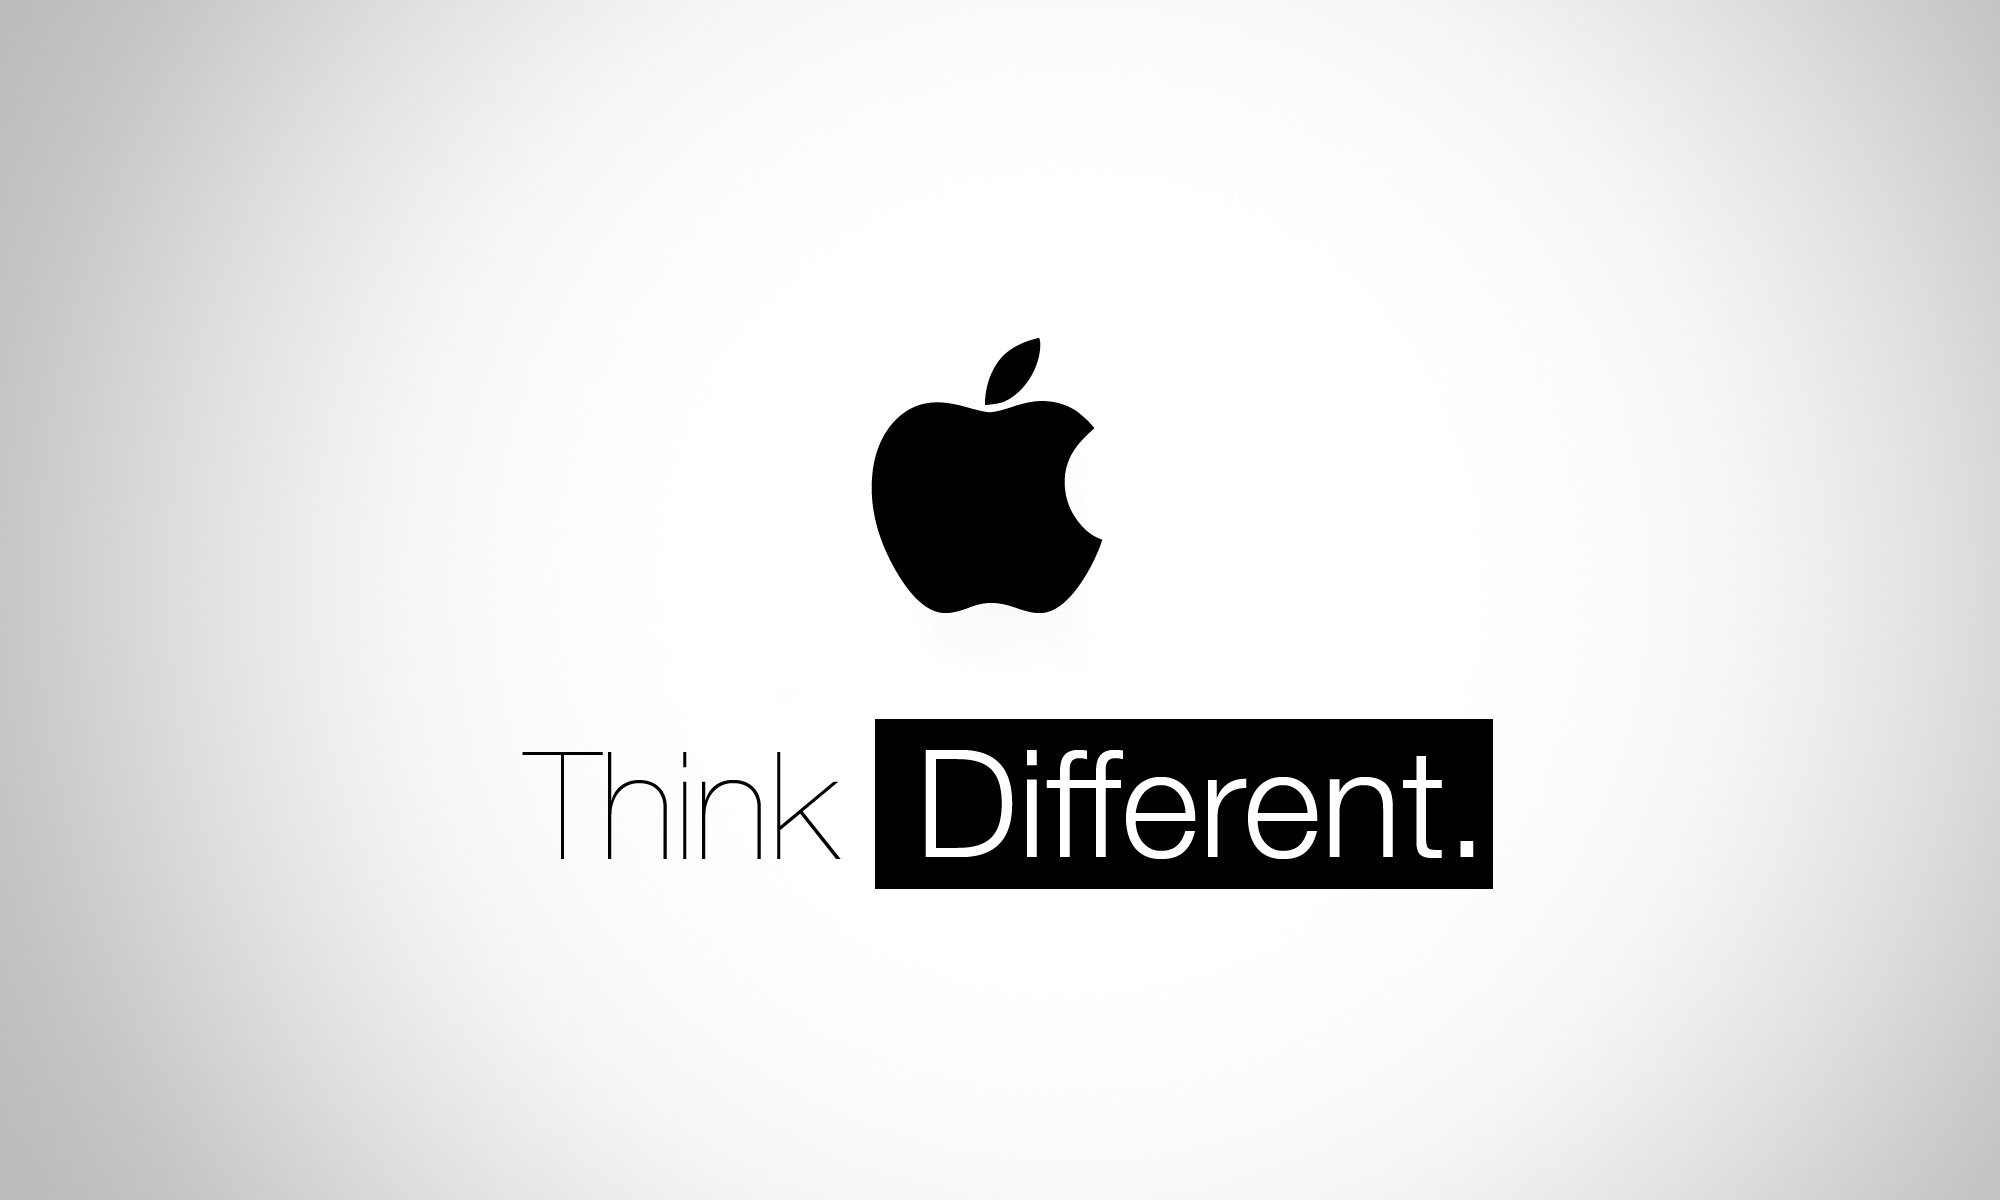 Apple Think Different Apple Wallpaper Hd Think Different